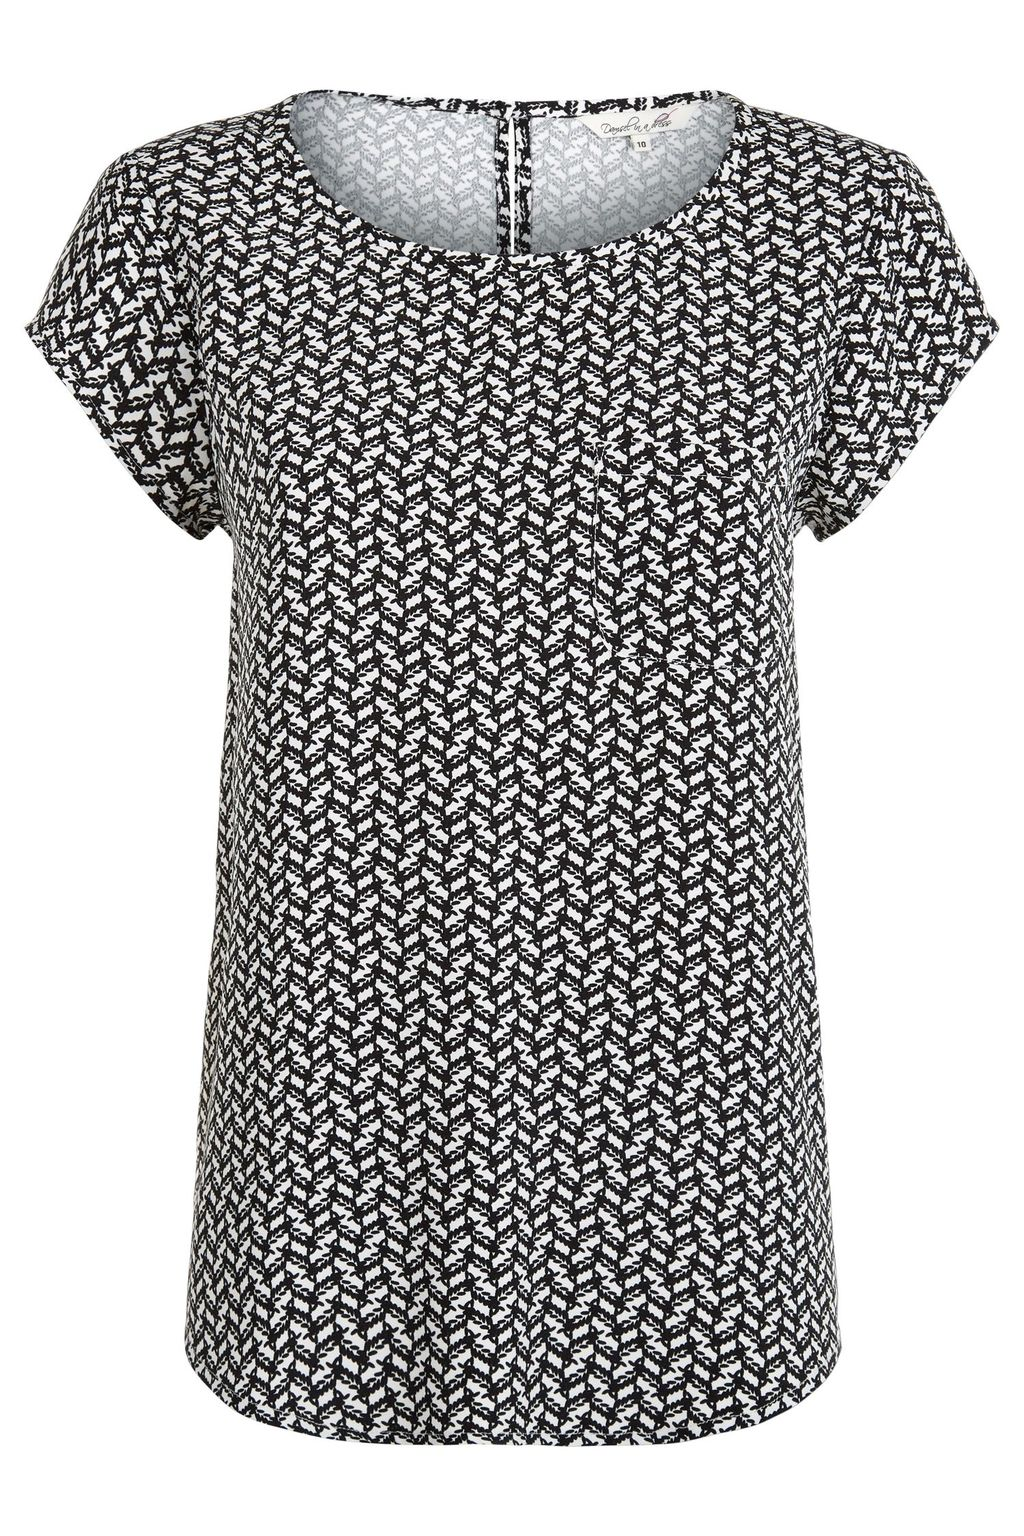 Theadora Top, Black Multi - neckline: round neck; secondary colour: light grey; predominant colour: black; occasions: casual; length: standard; style: top; fibres: viscose/rayon - 100%; fit: body skimming; sleeve length: short sleeve; sleeve style: standard; pattern type: fabric; pattern: patterned/print; texture group: other - light to midweight; multicoloured: multicoloured; season: s/s 2016; wardrobe: highlight